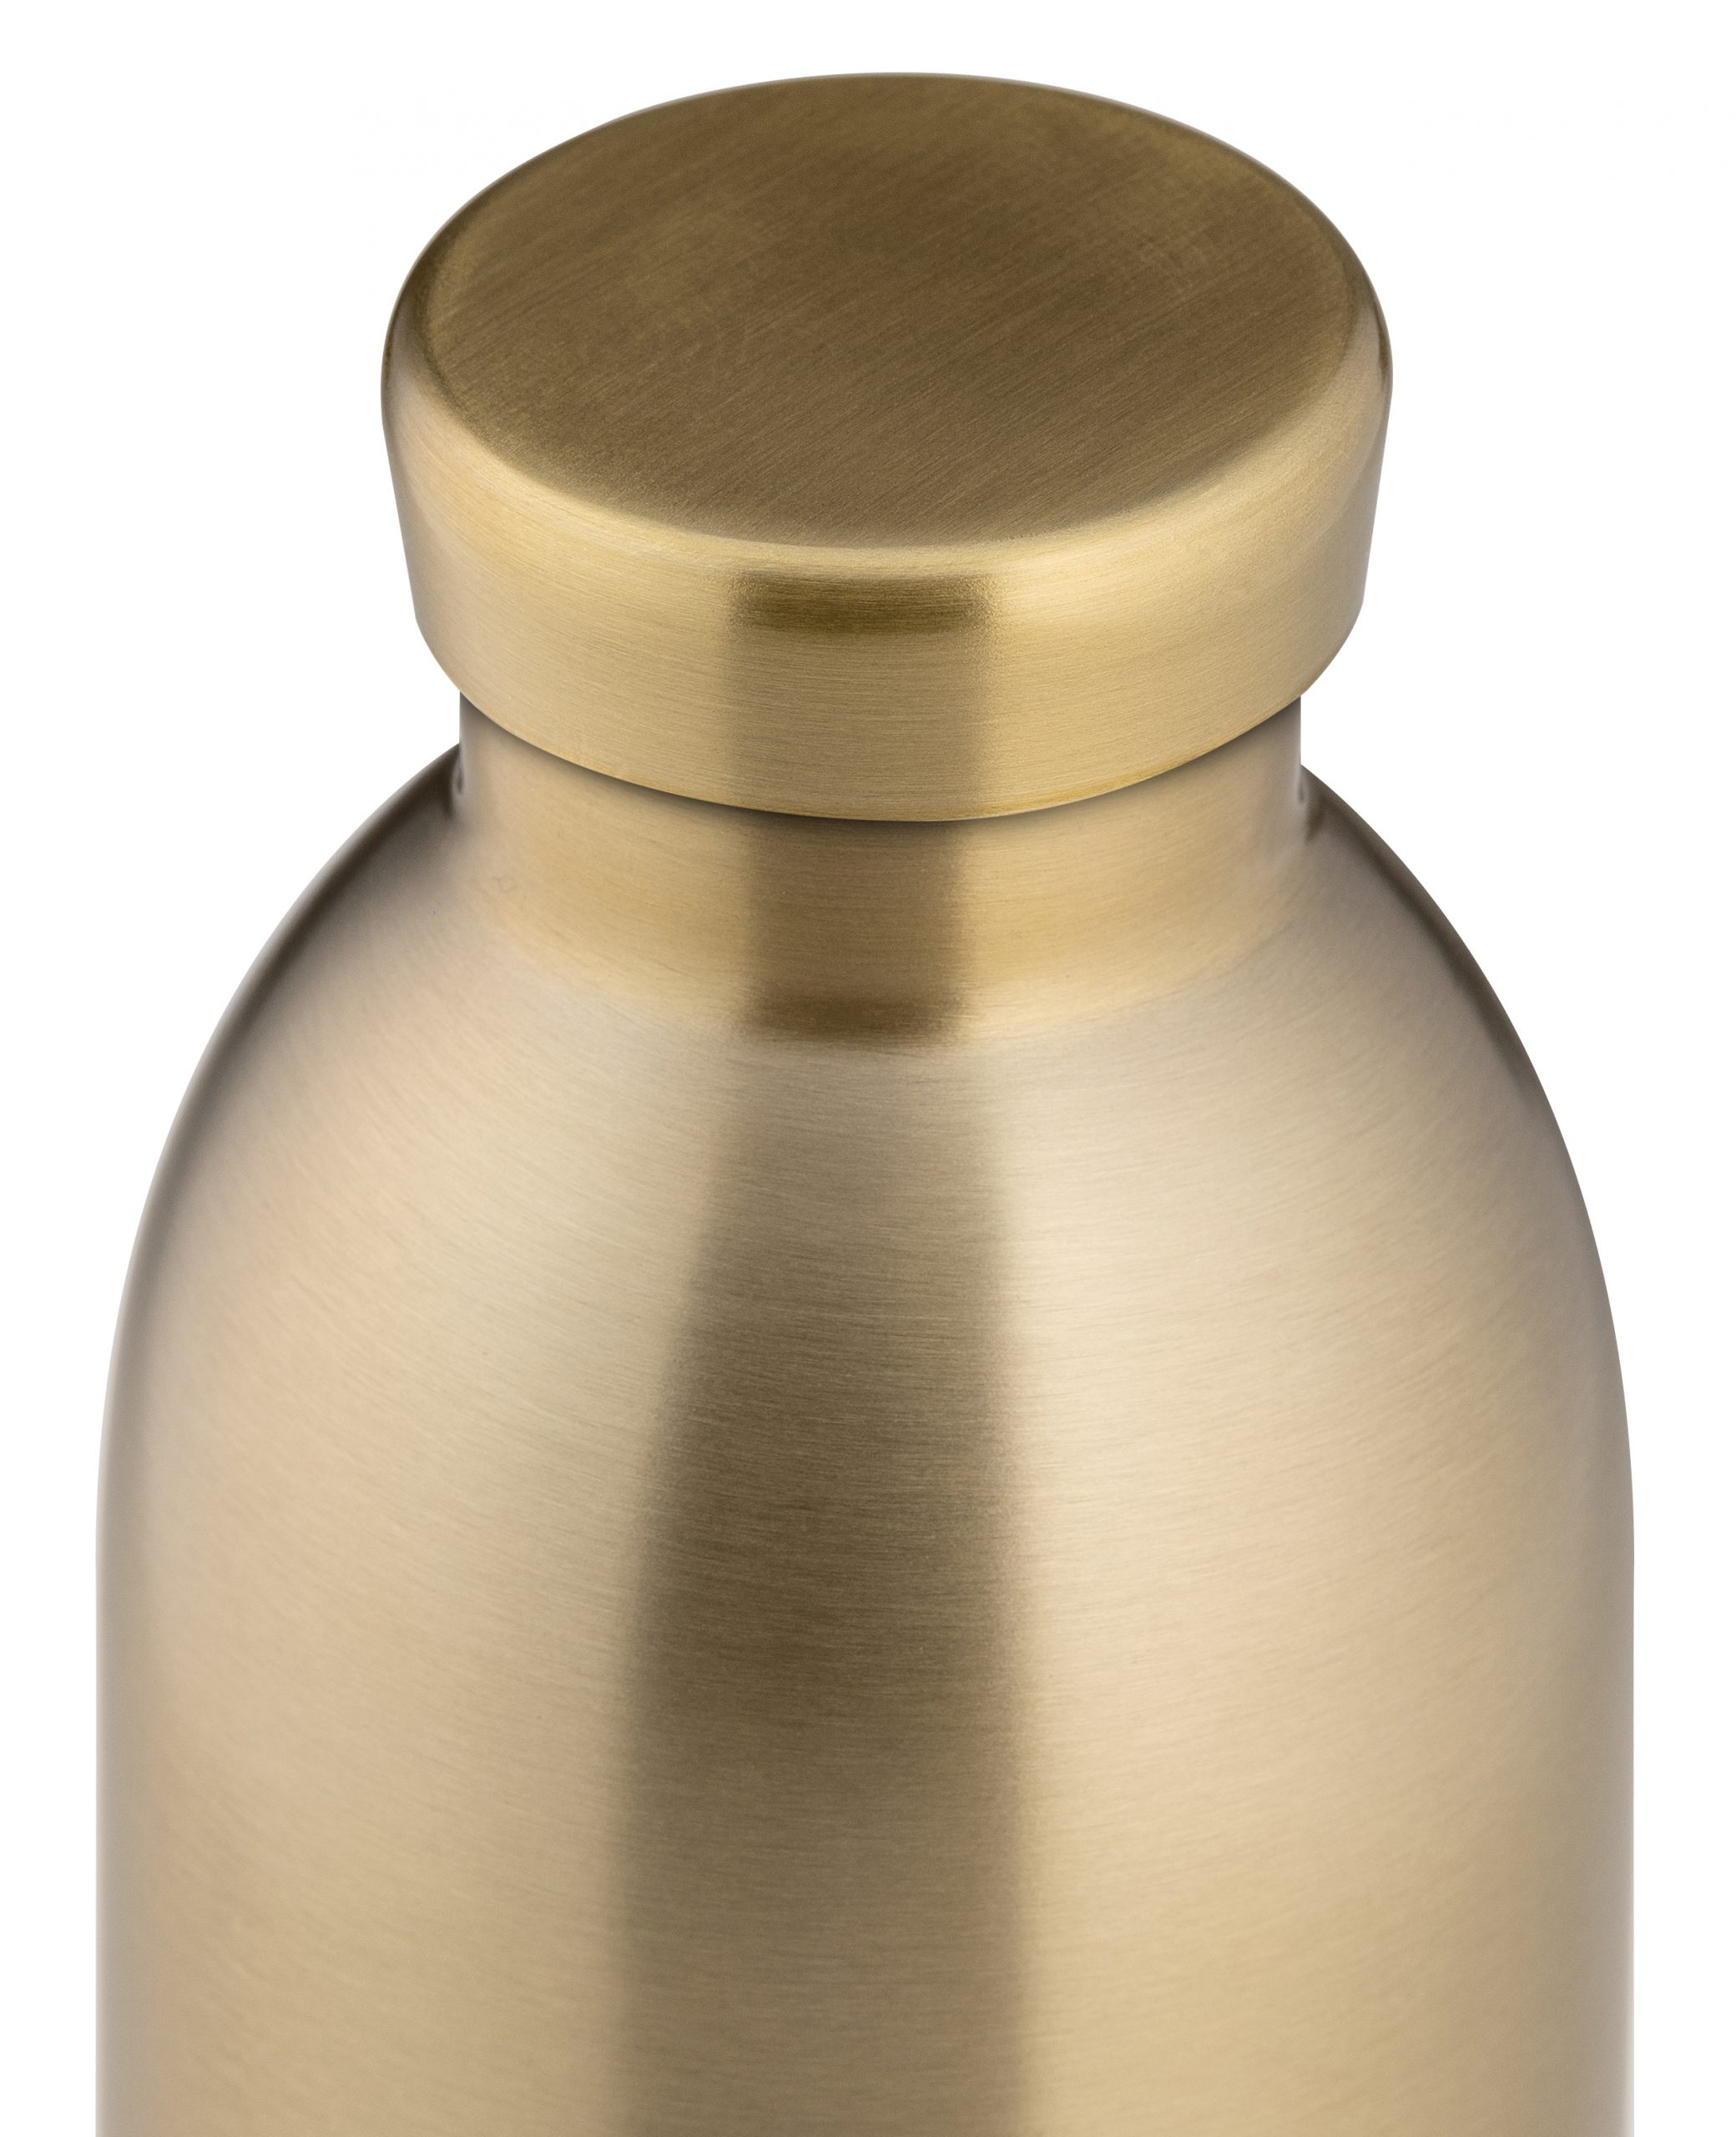 24bottles® Clima Bottle 500ml – Prosecco Gold